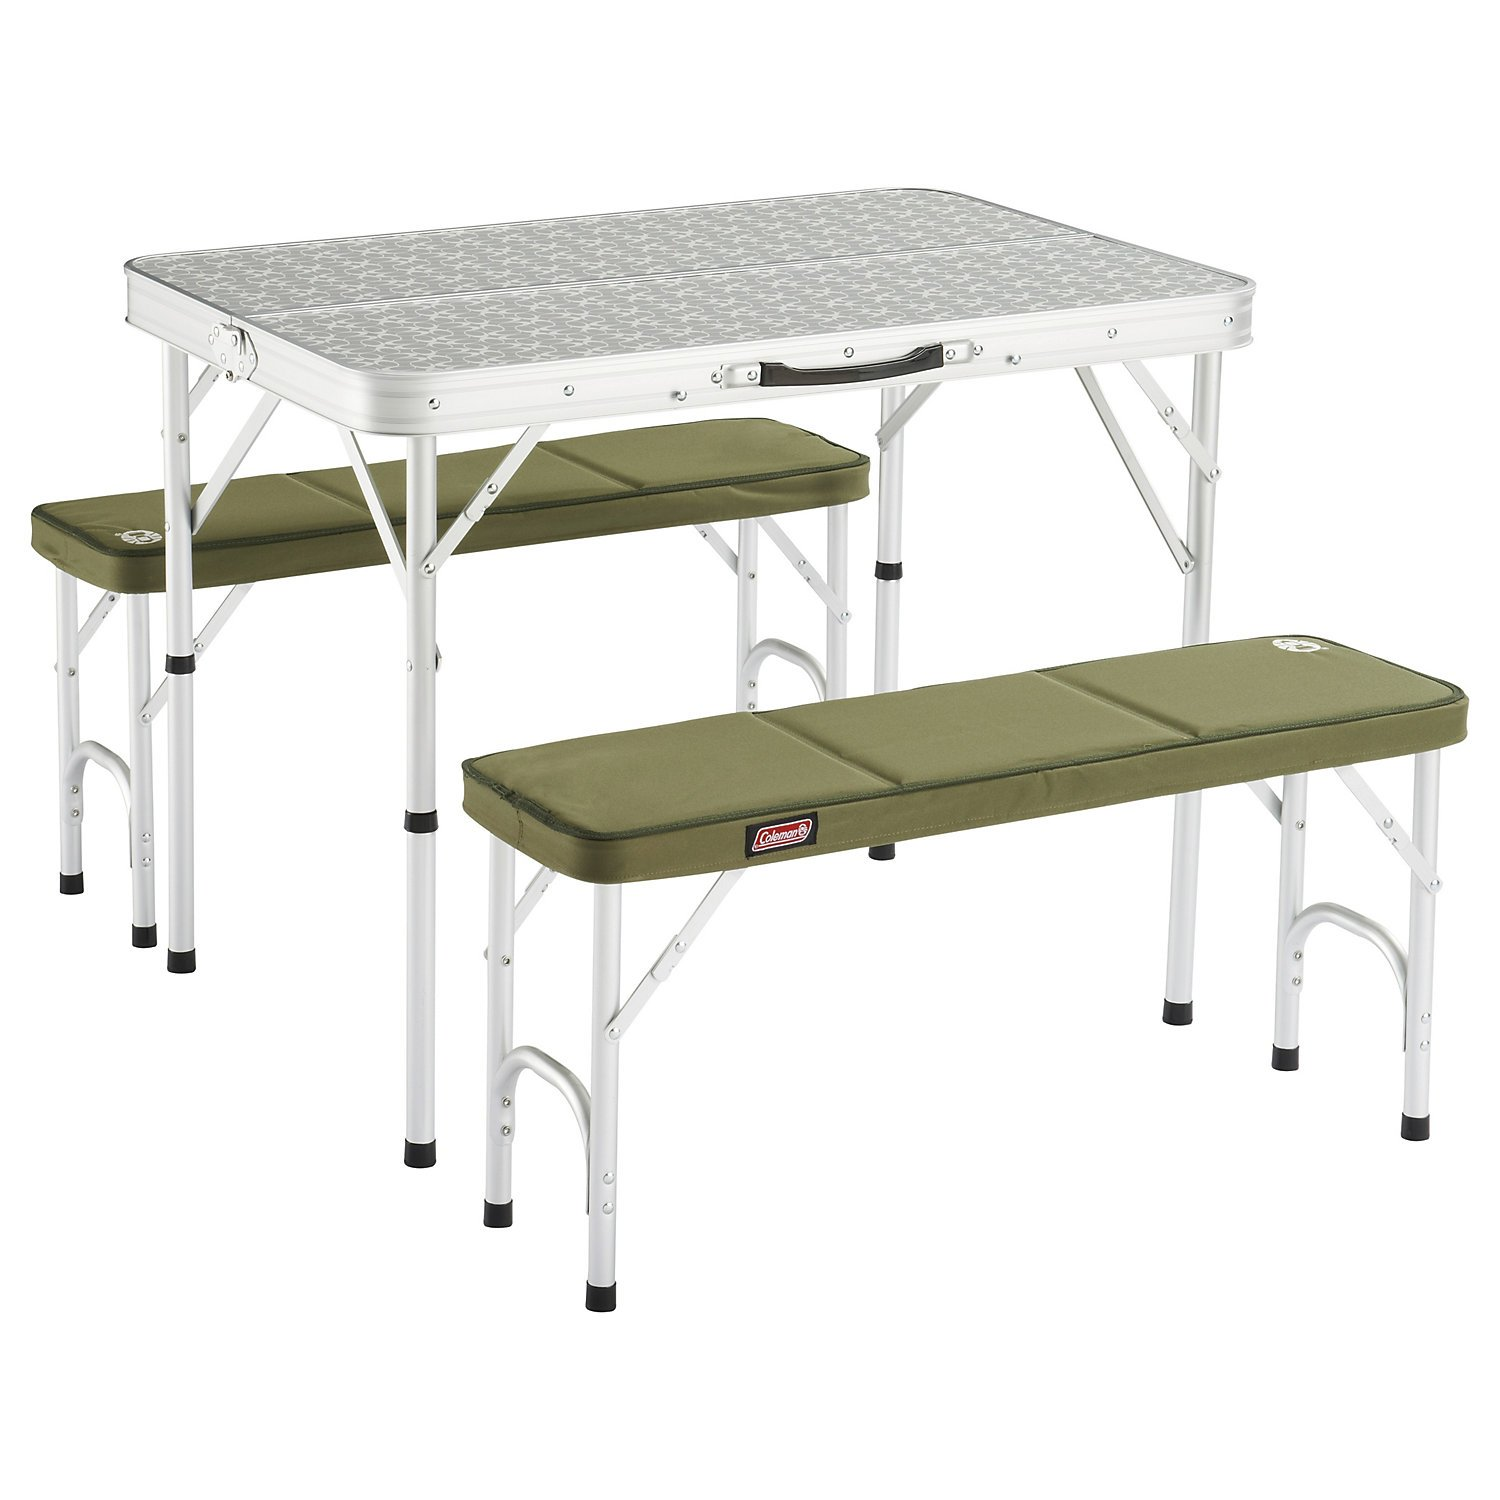 Coleman Pack Away Table for Four Amazon Sports & Outdoors